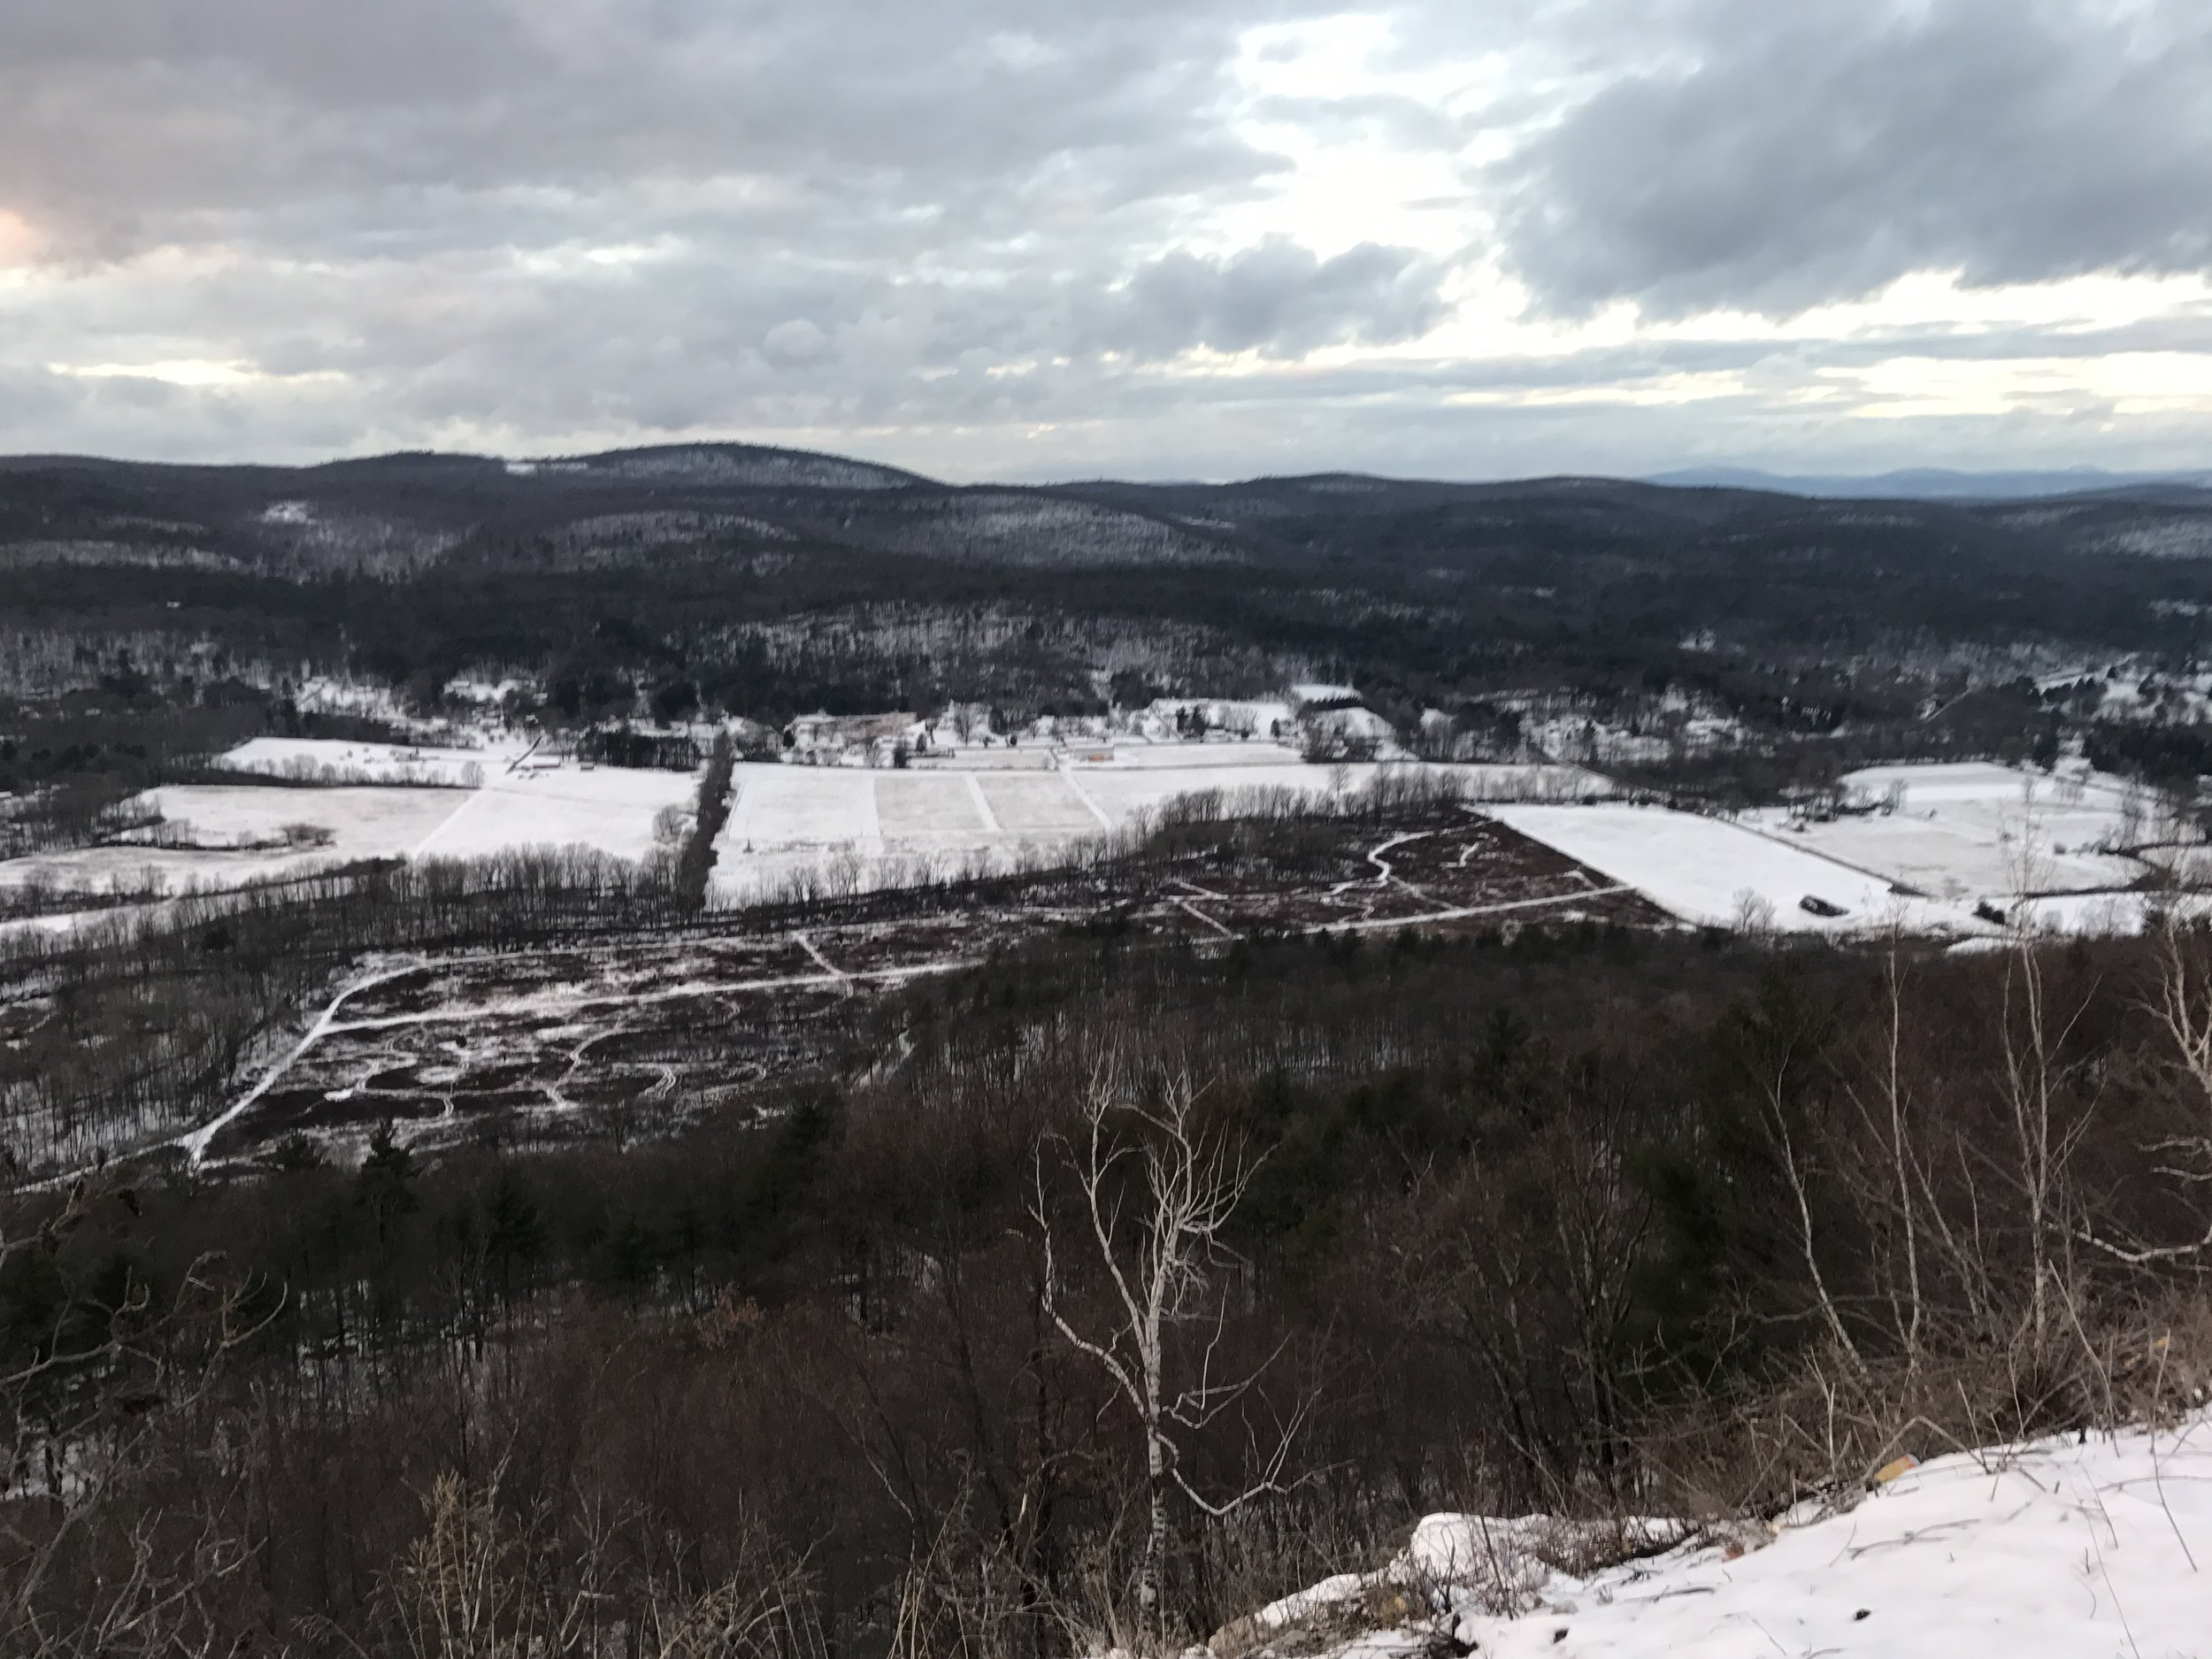 A view of the area from the Shawangunk Ridge.